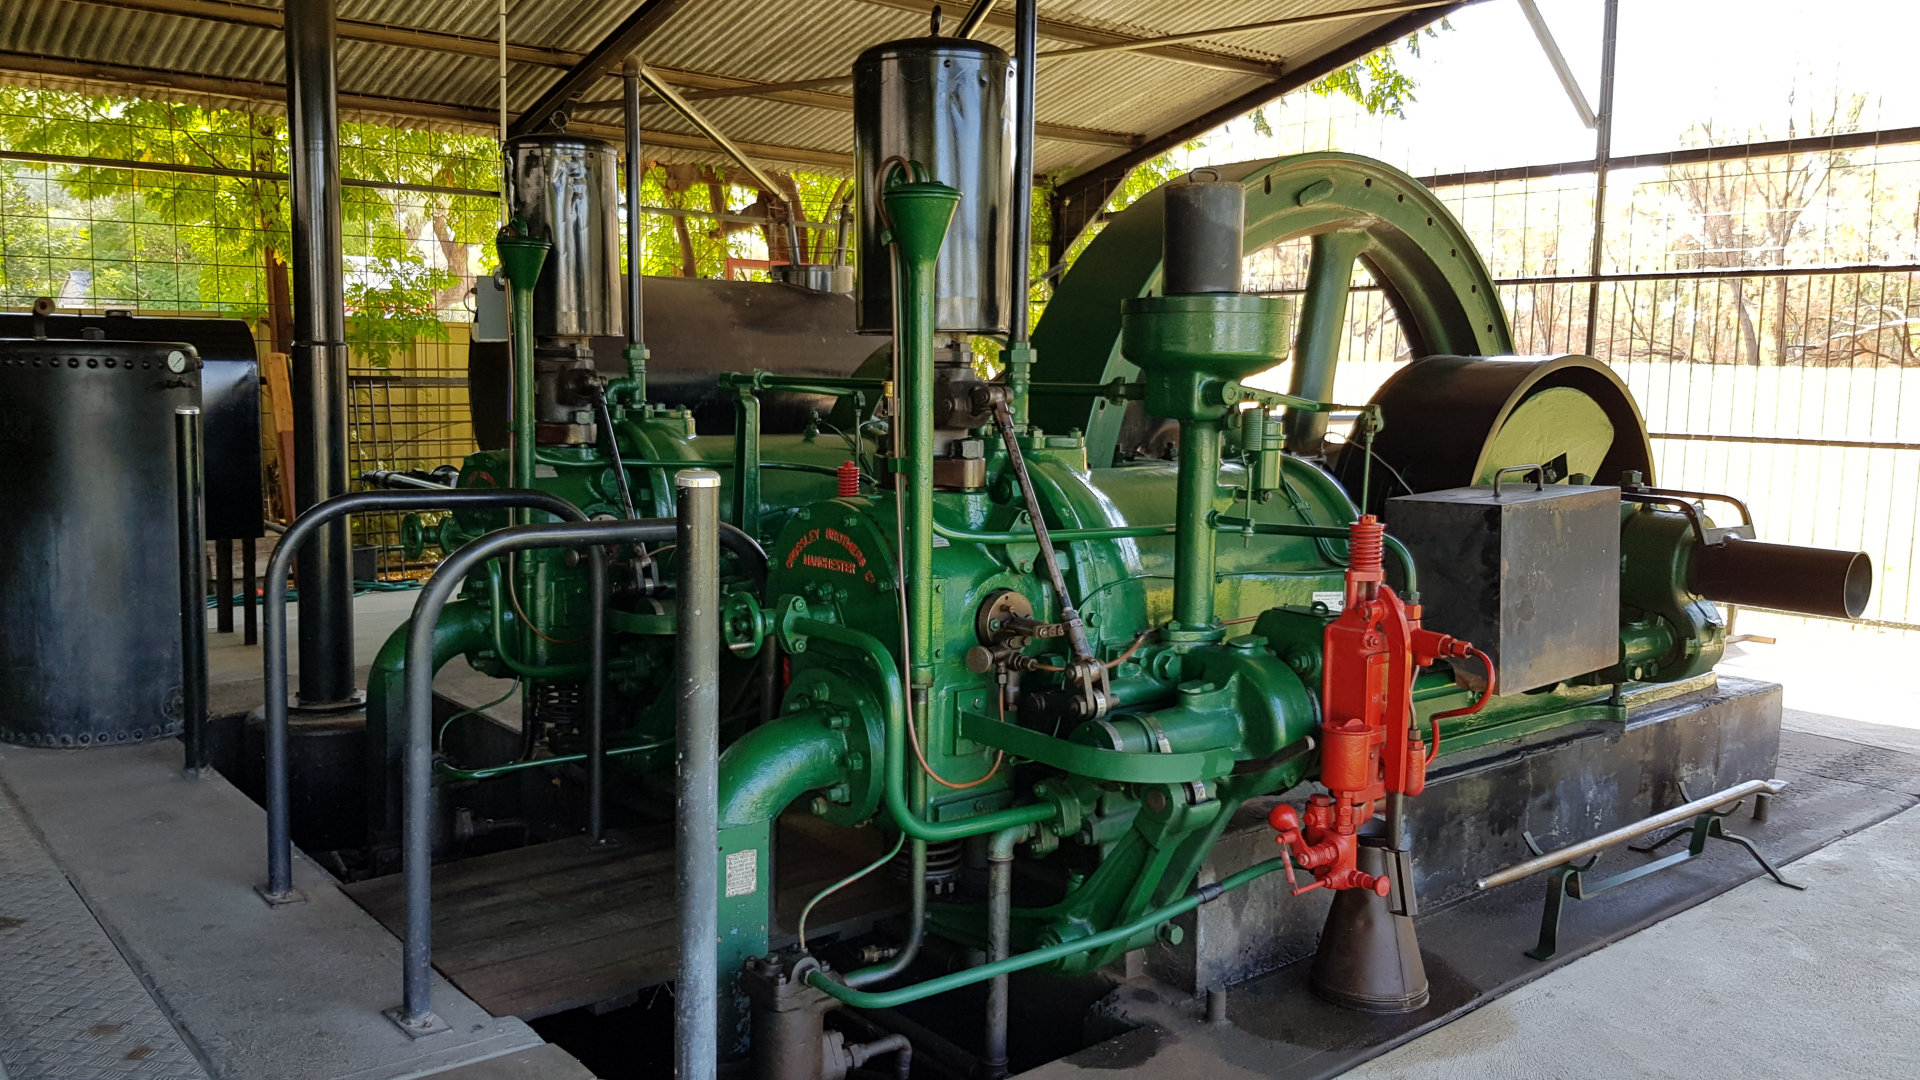 The Crossley Engine in Bourke, an oil fuelled stationary engine manufactured by the Crossley Brothers in 1923. An early four stroke diesel type engine, following the steam era. With two cylinders the 108.6 litre engine produced 103kW of power at 260rpm.